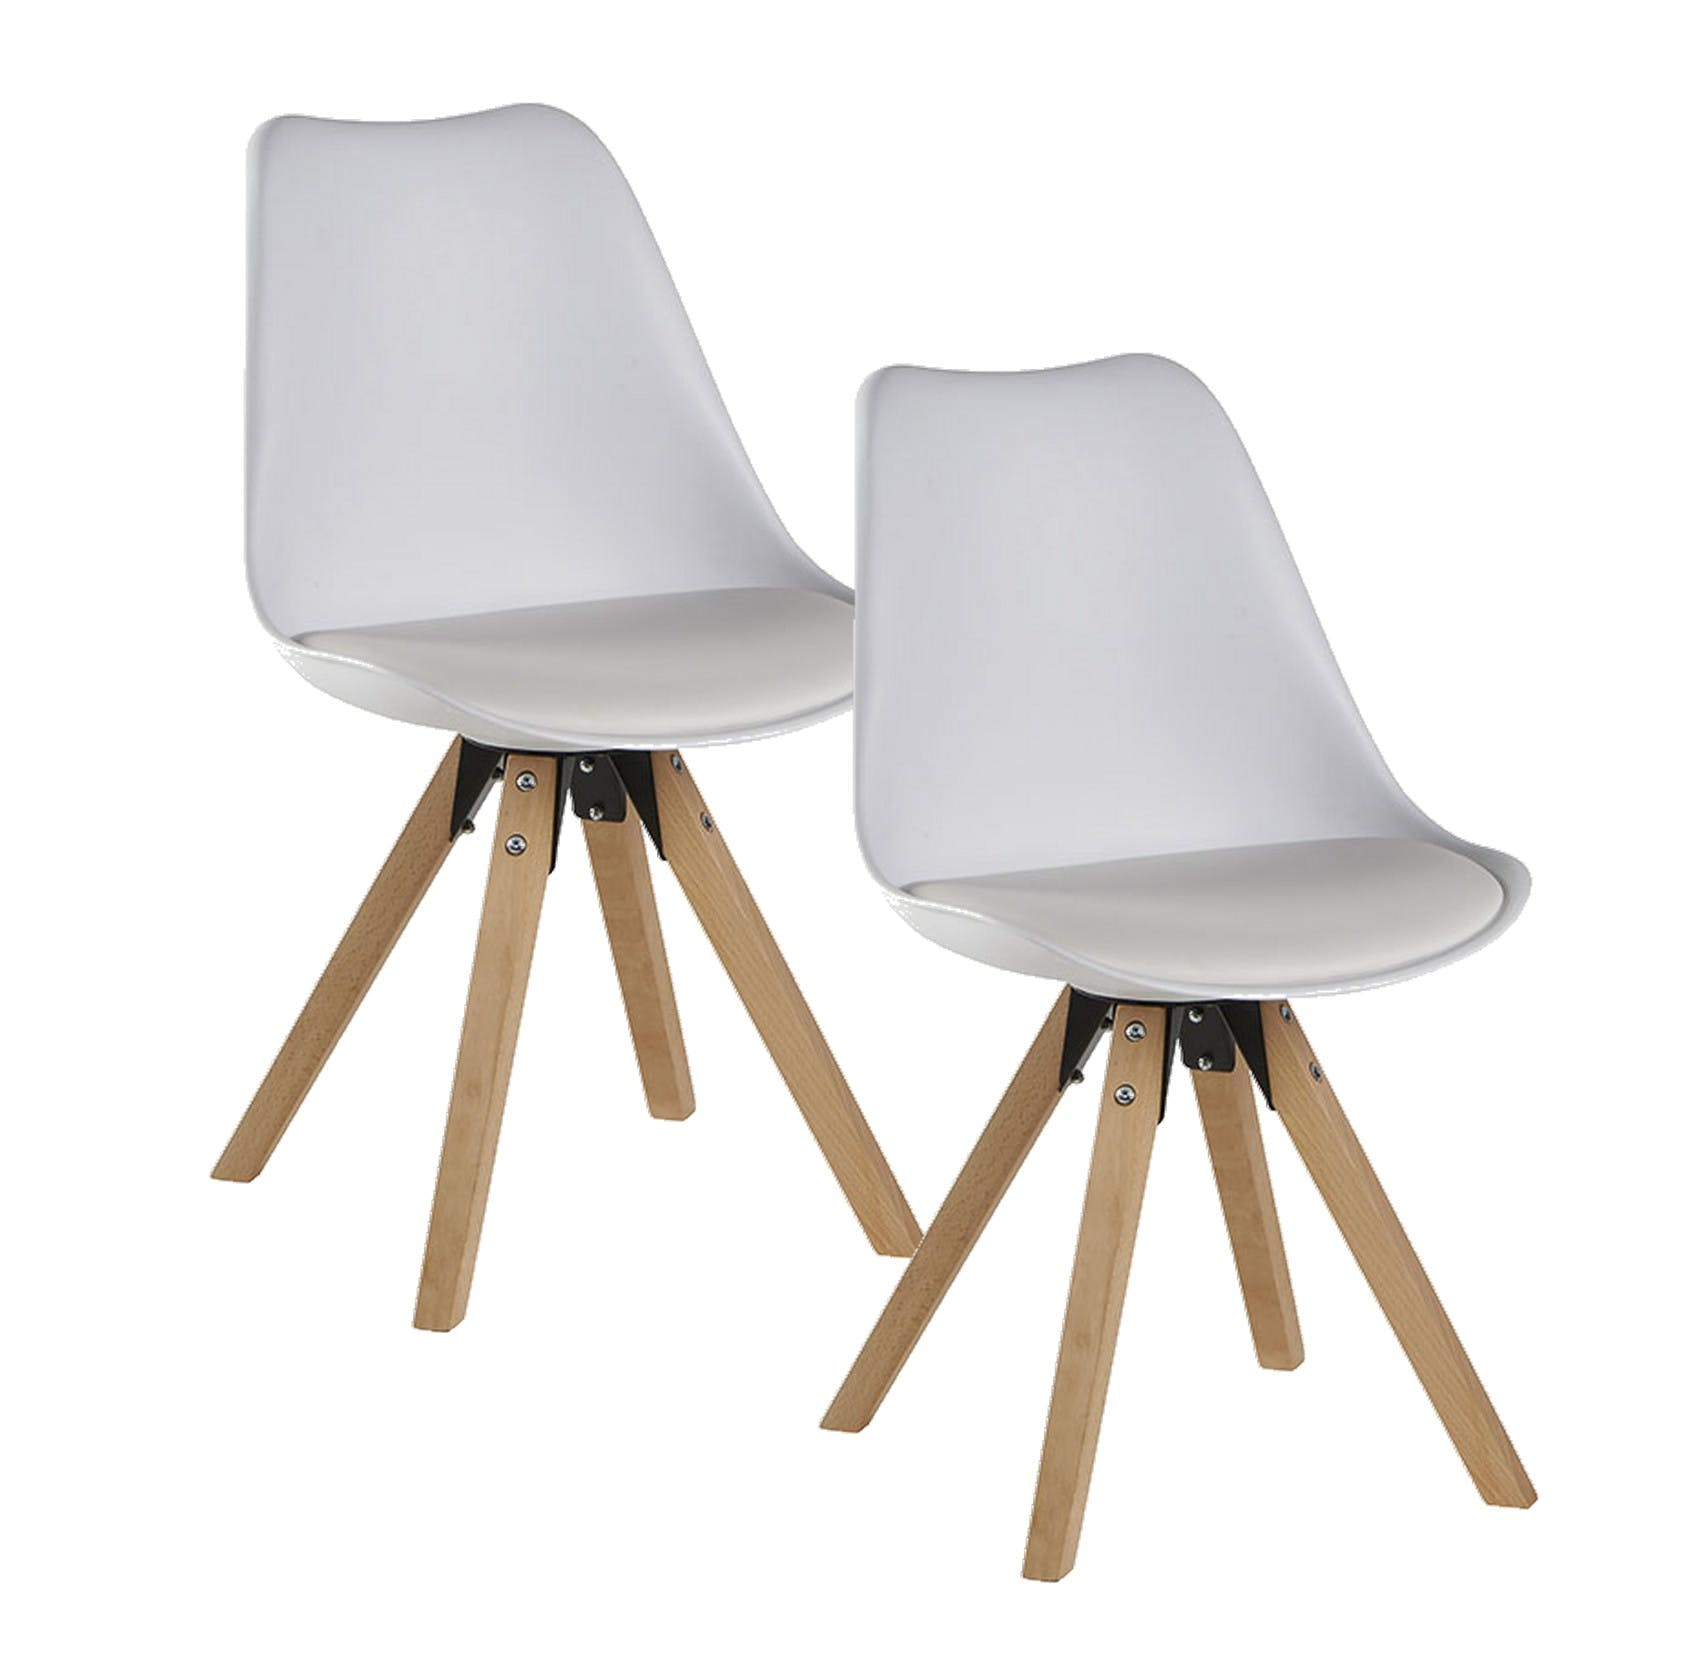 Chaise scandinave blanche TONY (lot de 2)